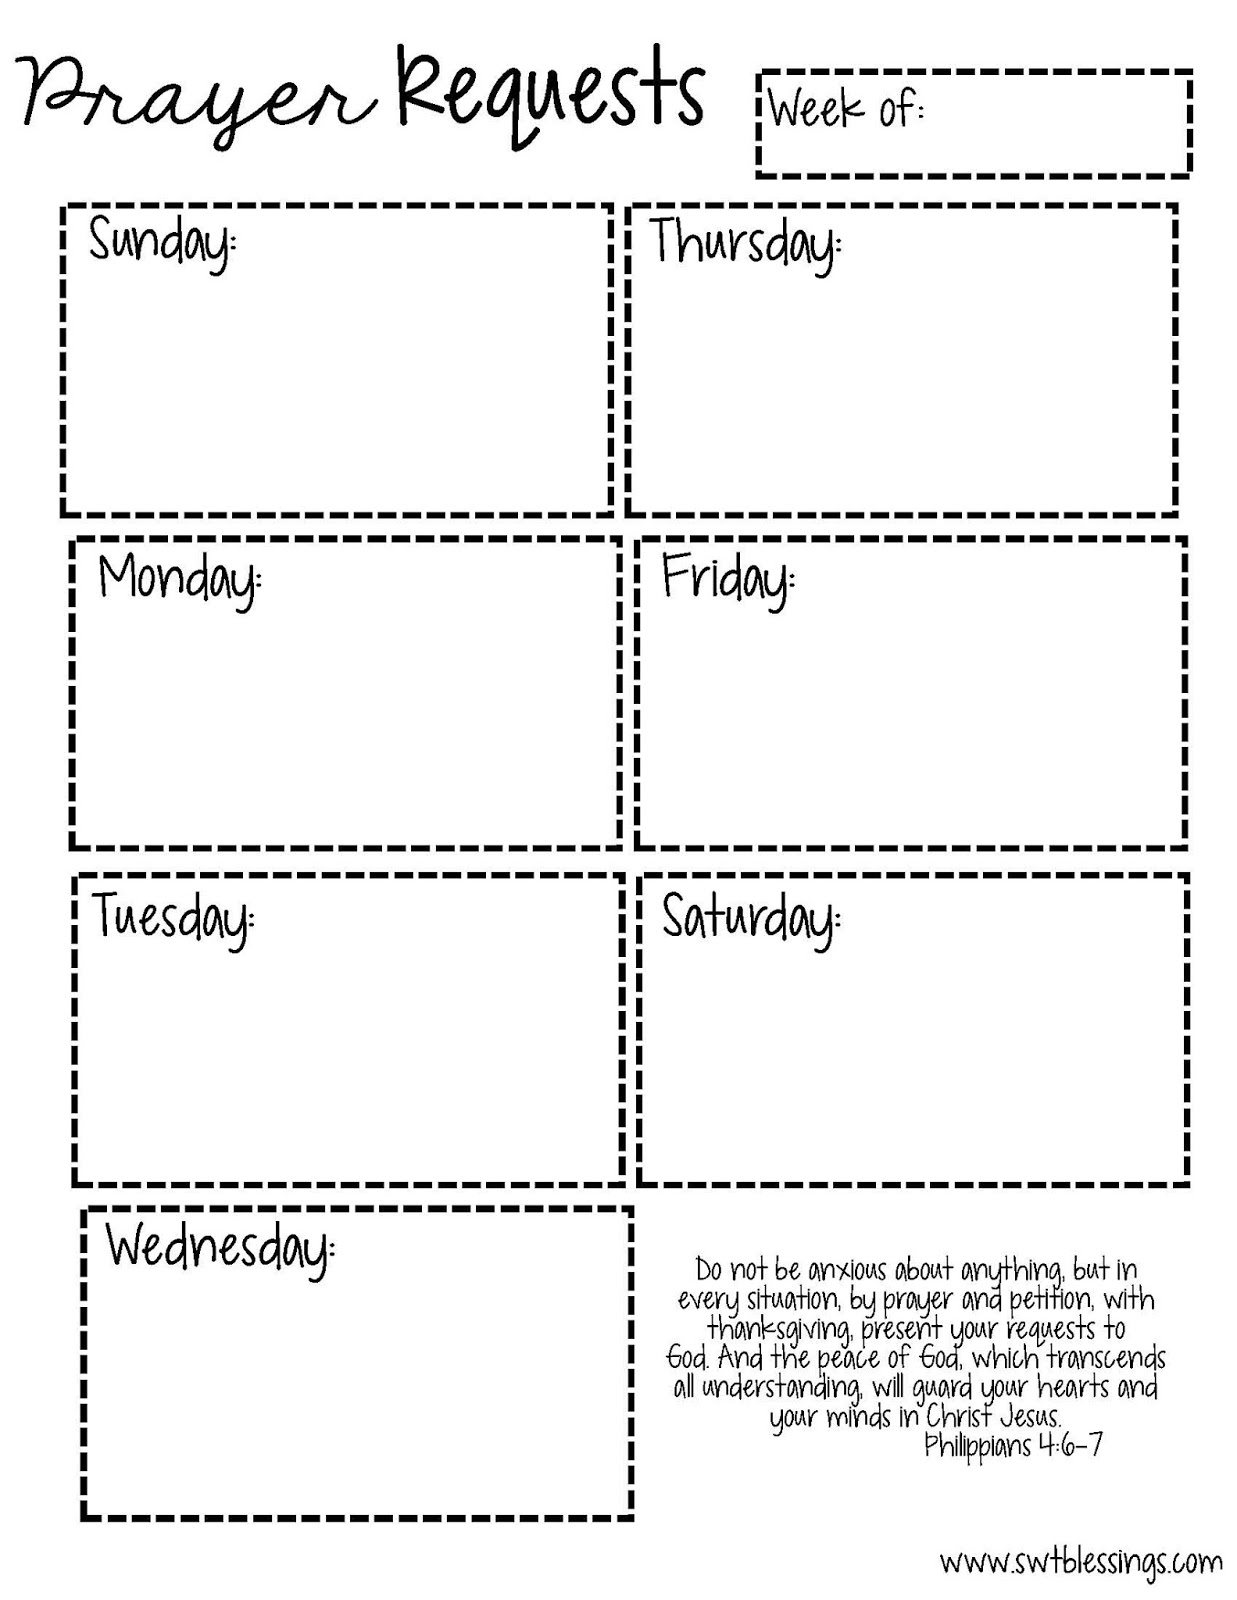 Sweet Blessings Prayer Request Printables